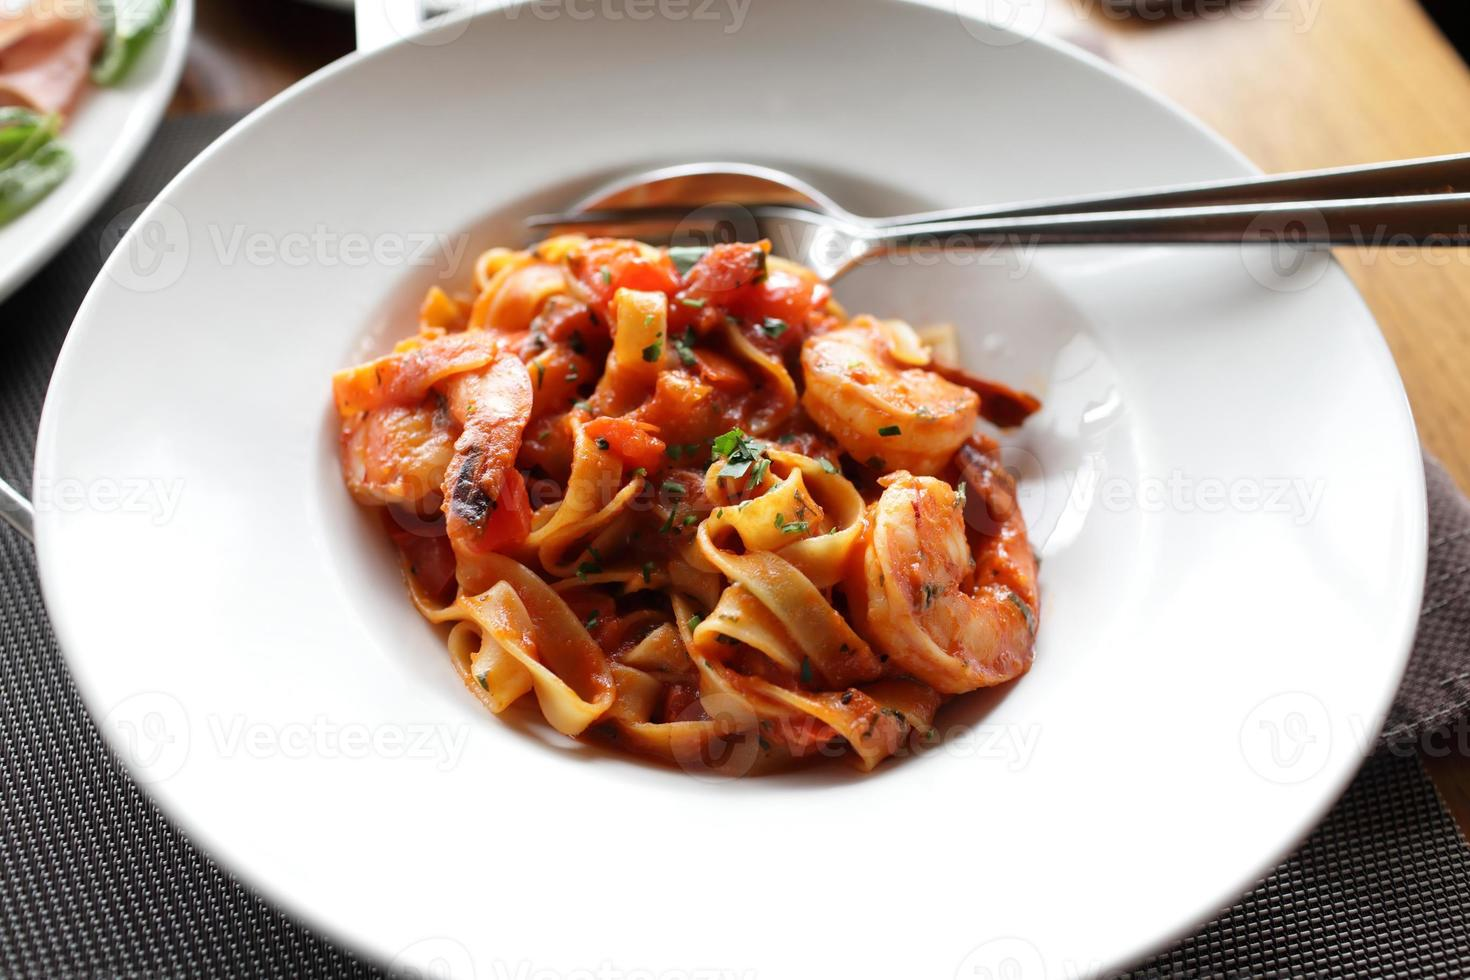 Fettuccine with shrimp and tomatoes photo